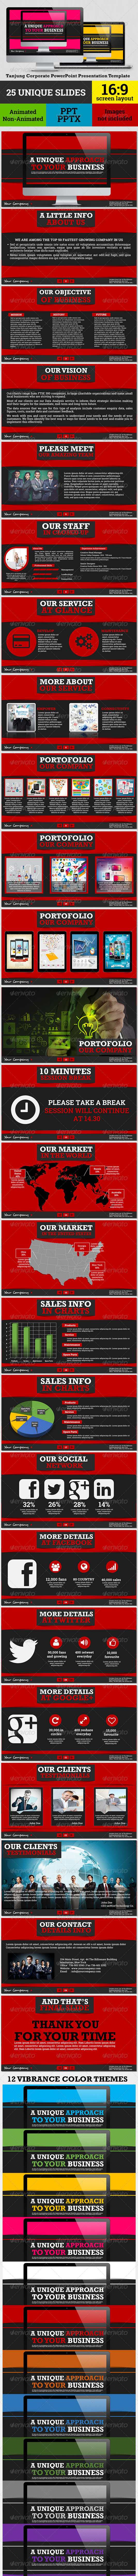 GraphicRiver Tanjung Corporate PowerPoint Presentation Template 7871366